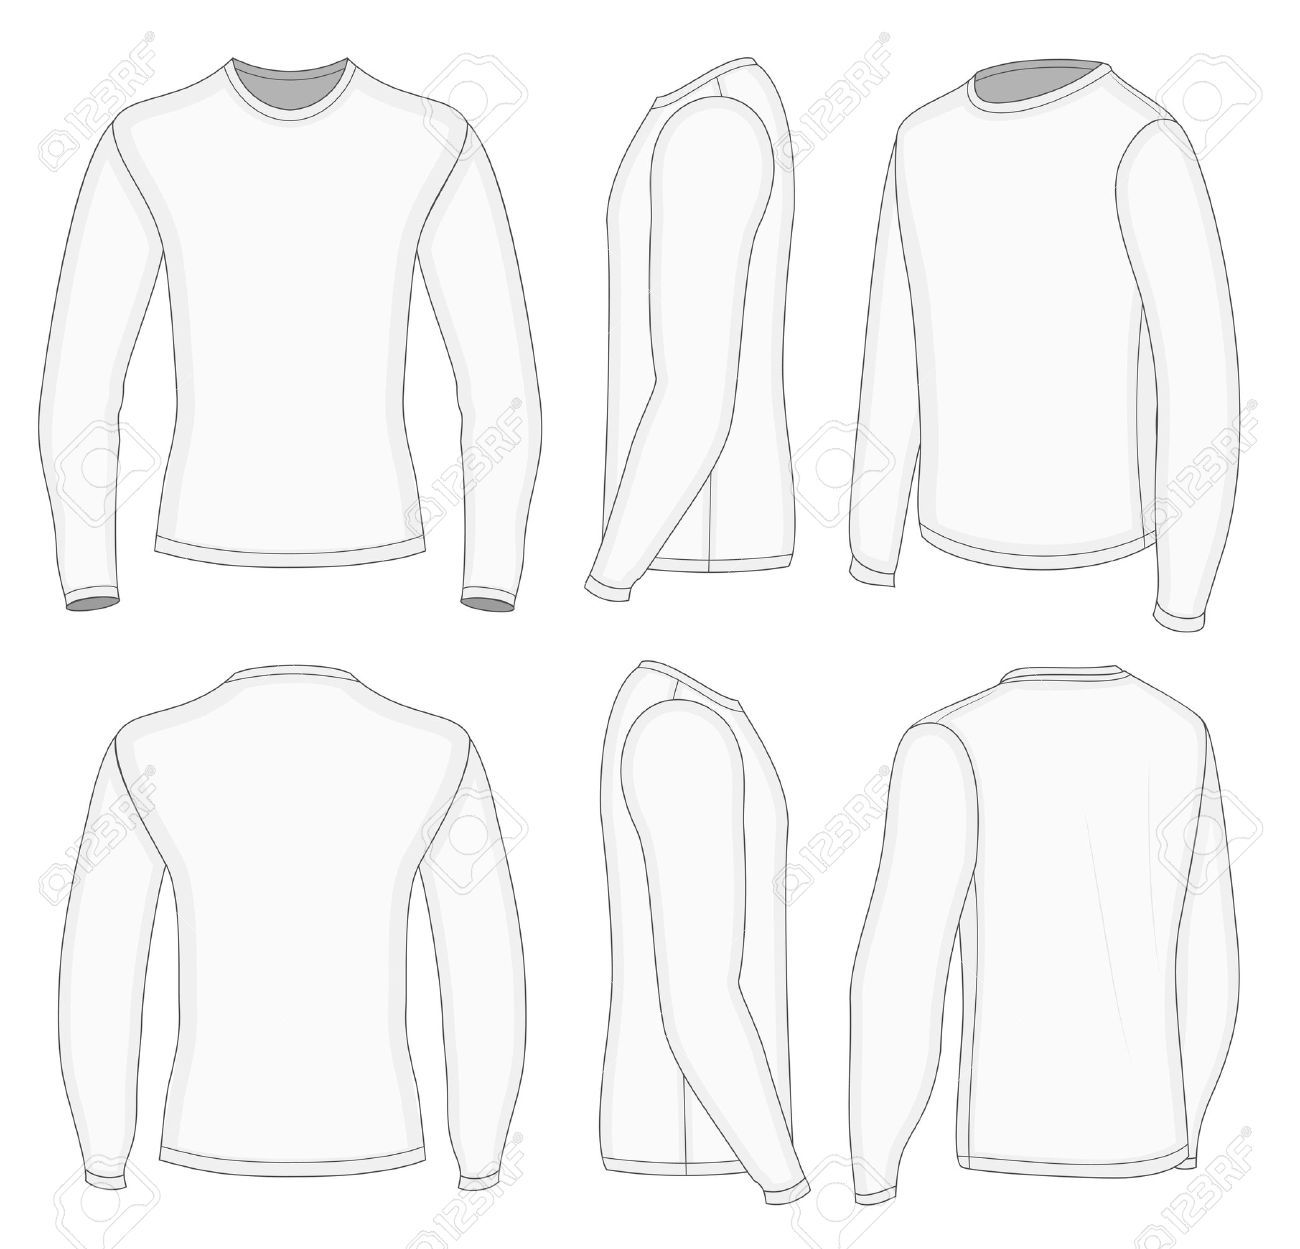 All Six Views Mens White Long Sleeve T Shirt Design Templates ...